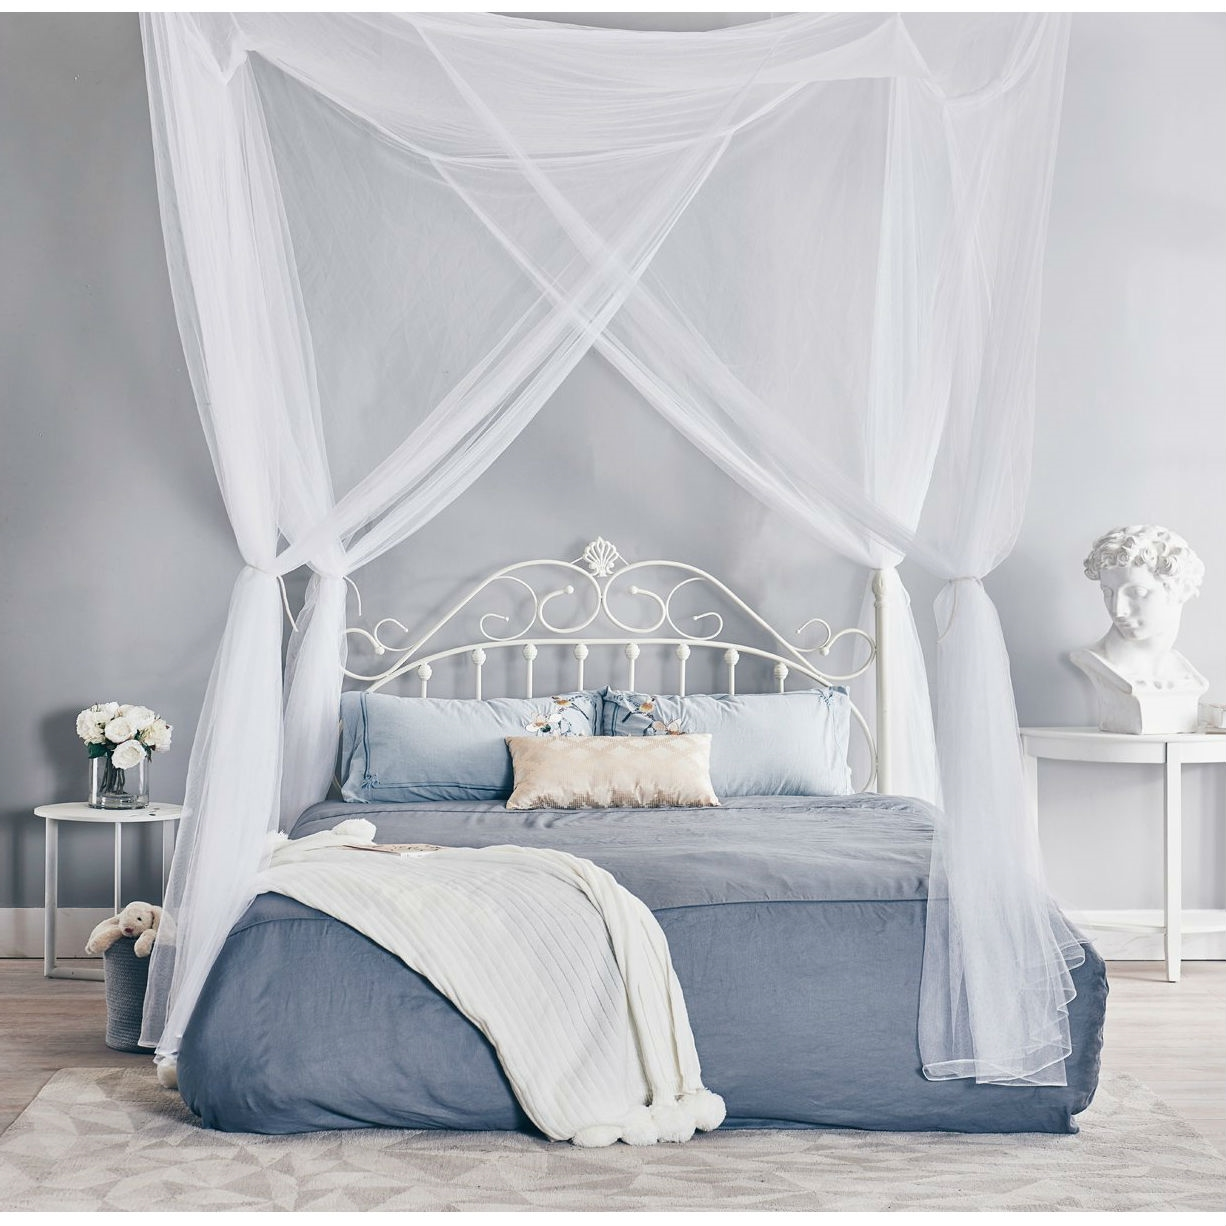 White 4 Post Bed Netting Mosquito Net For Canopy Beds Fits Size Full Queen And King Fastfurnishings Com